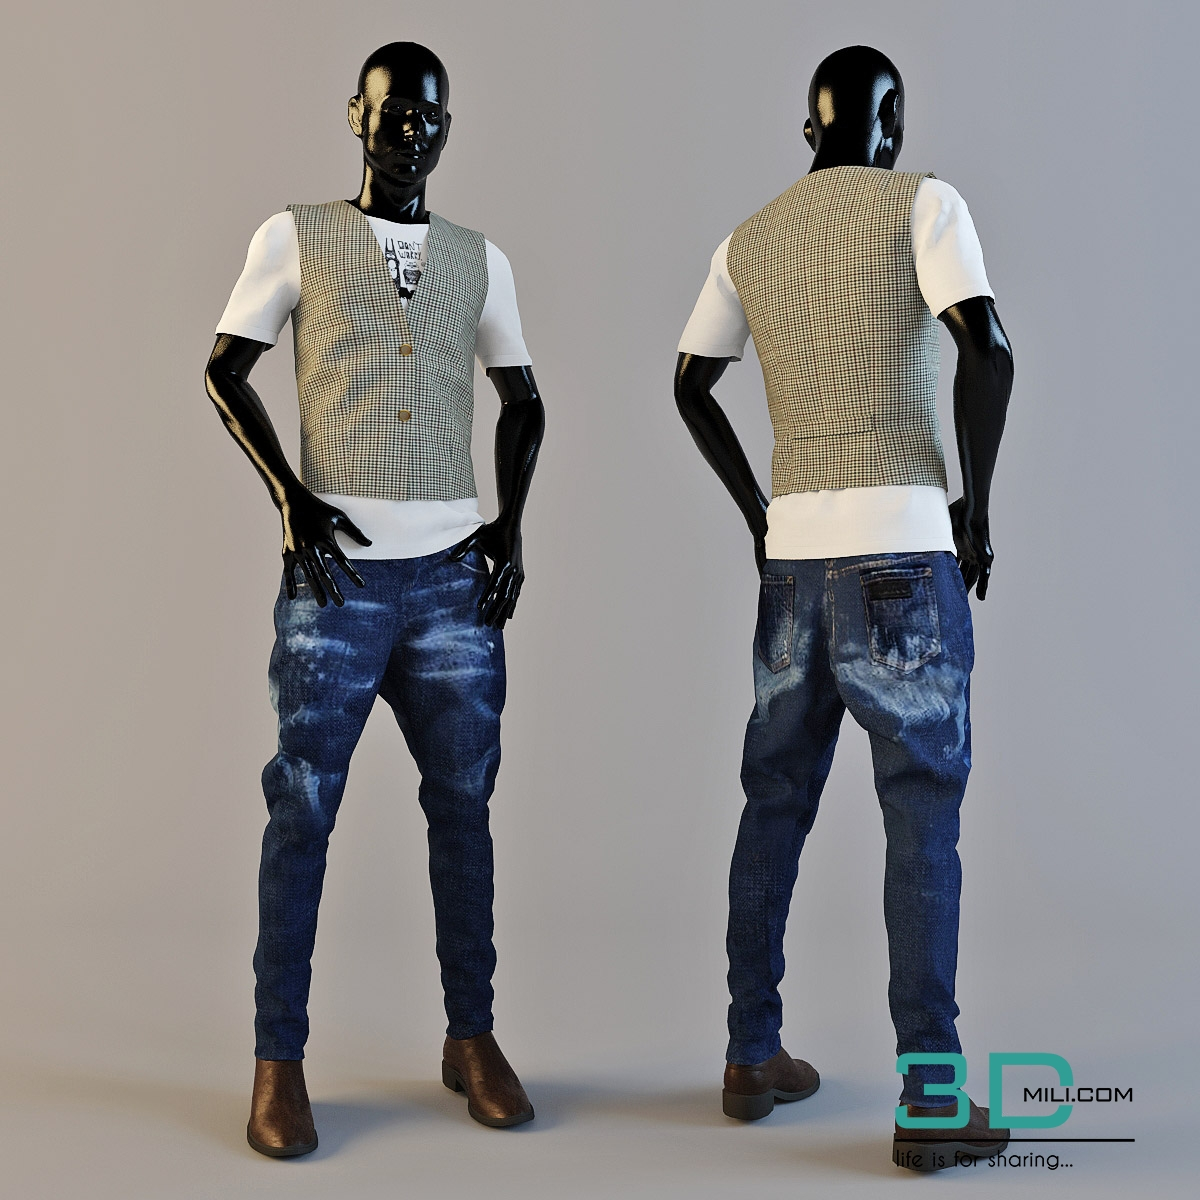 Mannequin 3ds max model free download